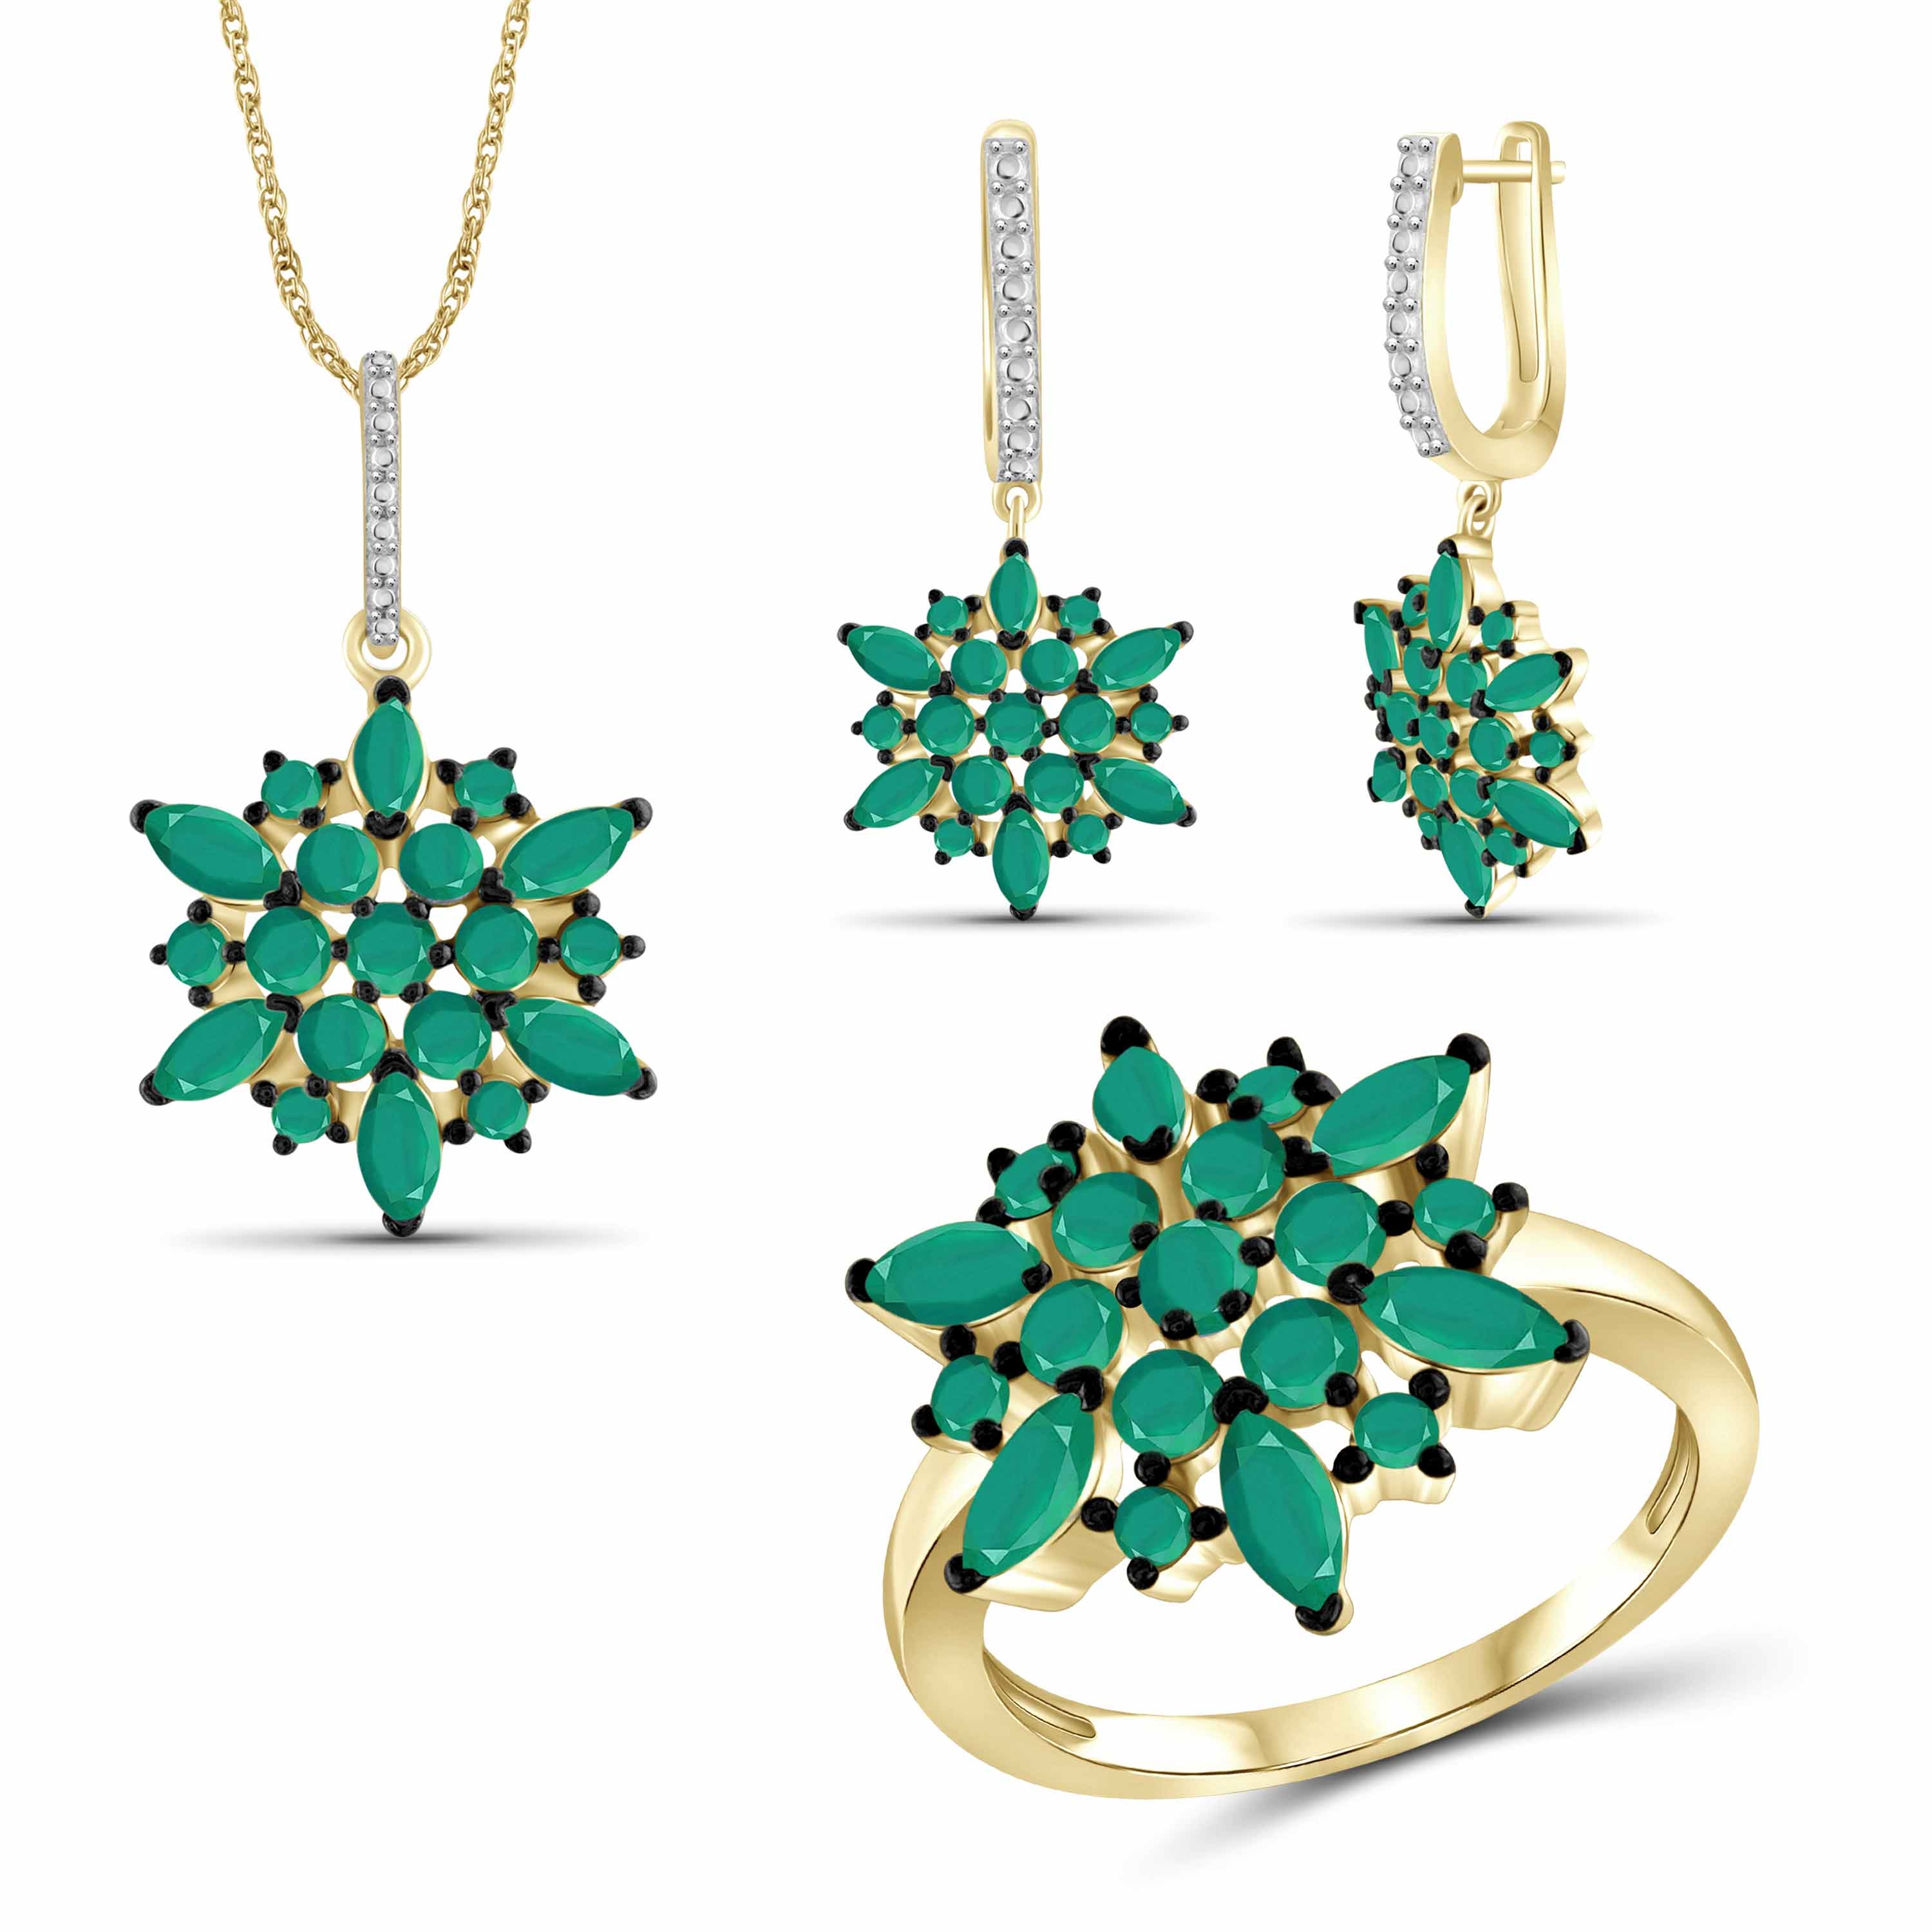 JewelersClub 7.00 Carat T.G.W. Emerald 14K Gold over Silver 3-Piece Jewelry set